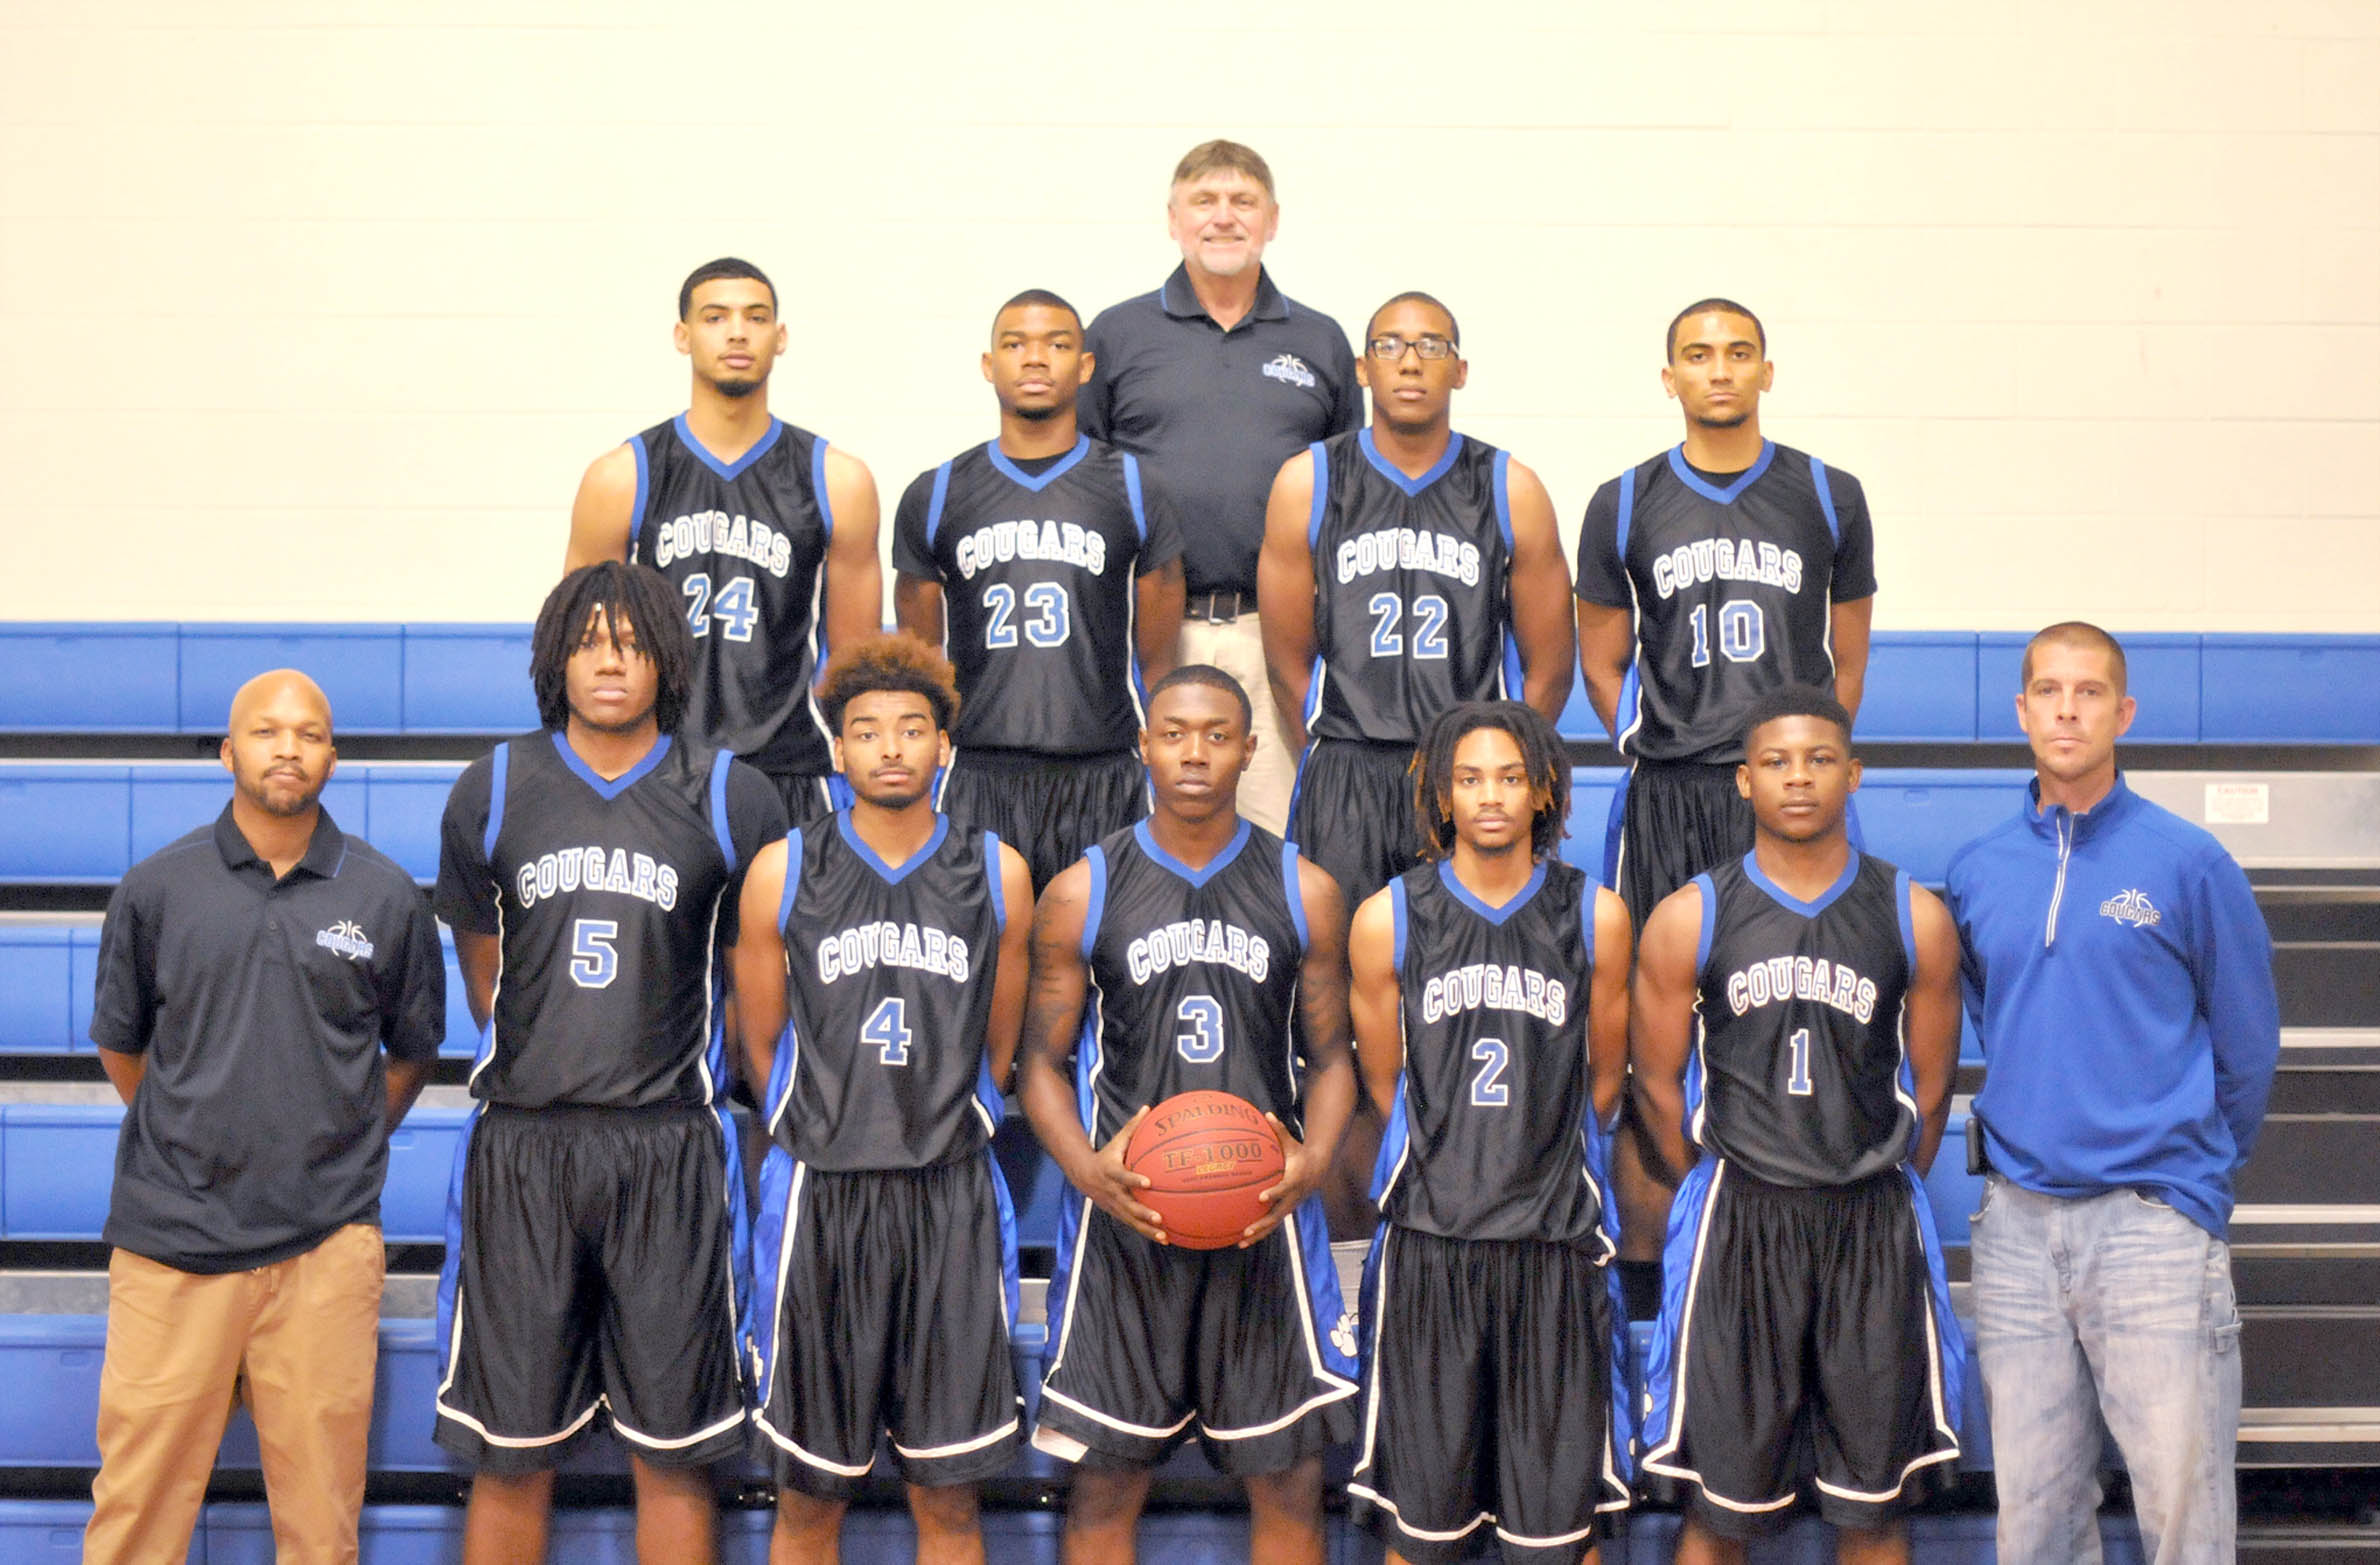 Read the full story, All-around athletes will be strength of CCCC men's basketball team